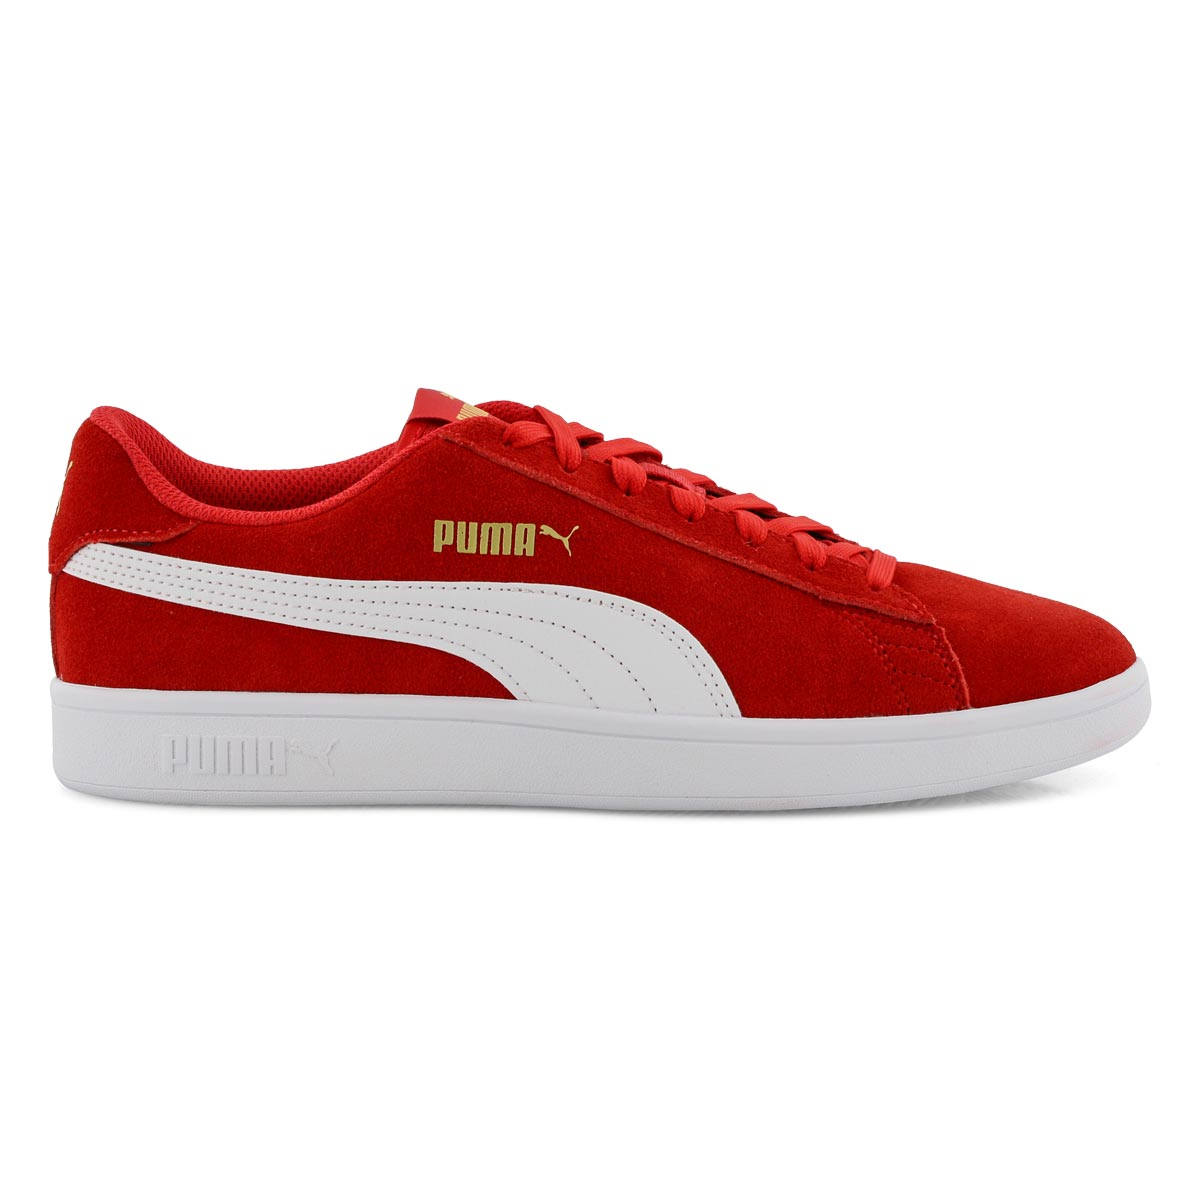 Men's PUMA SMASH v2 redwhite sneakers